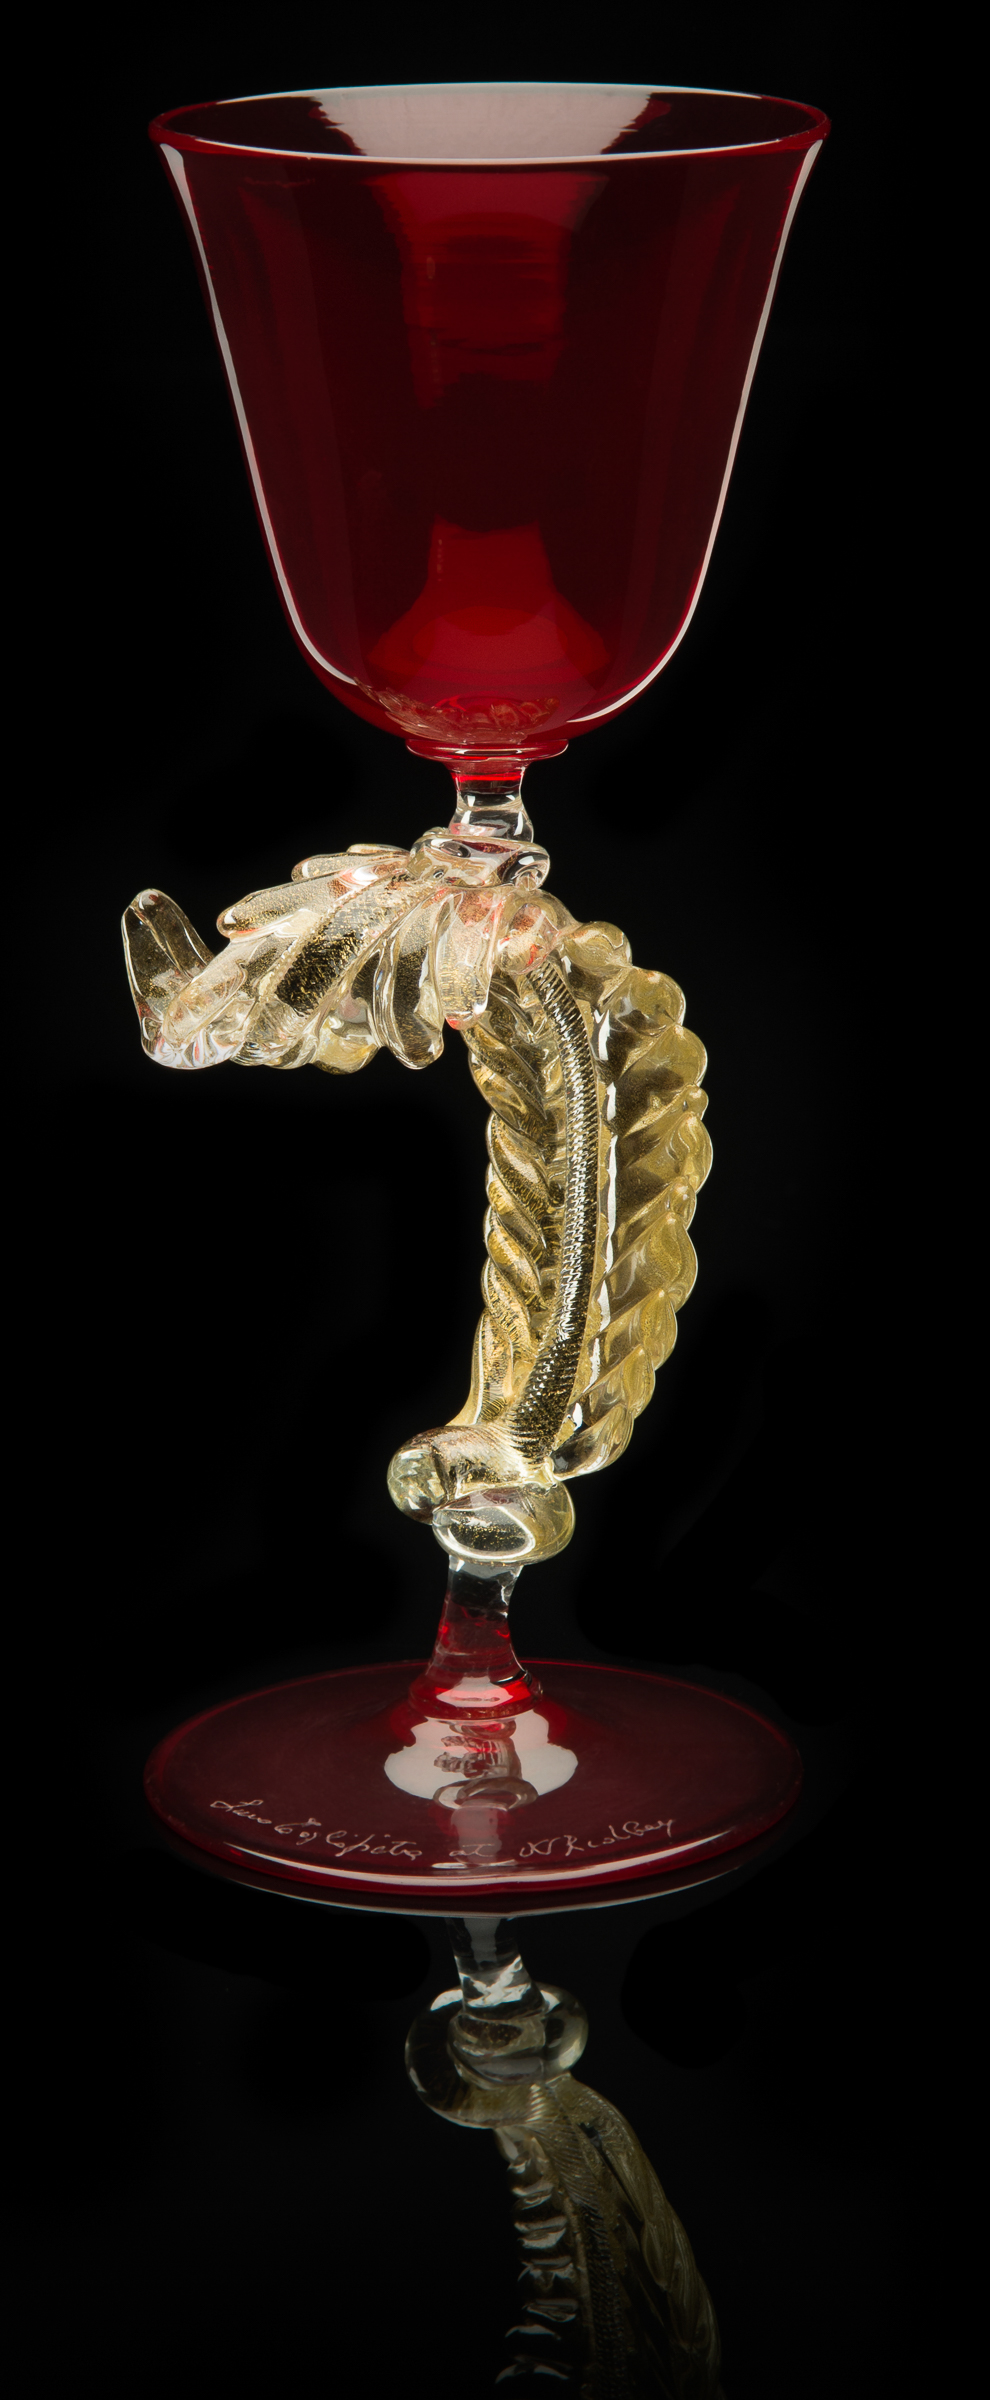 Lino Tagliapietra,  Feather-stem   Goblet  (1991-1994, glass and gold leaf, 7 1/2 x 3 x 3 inches), LT.64